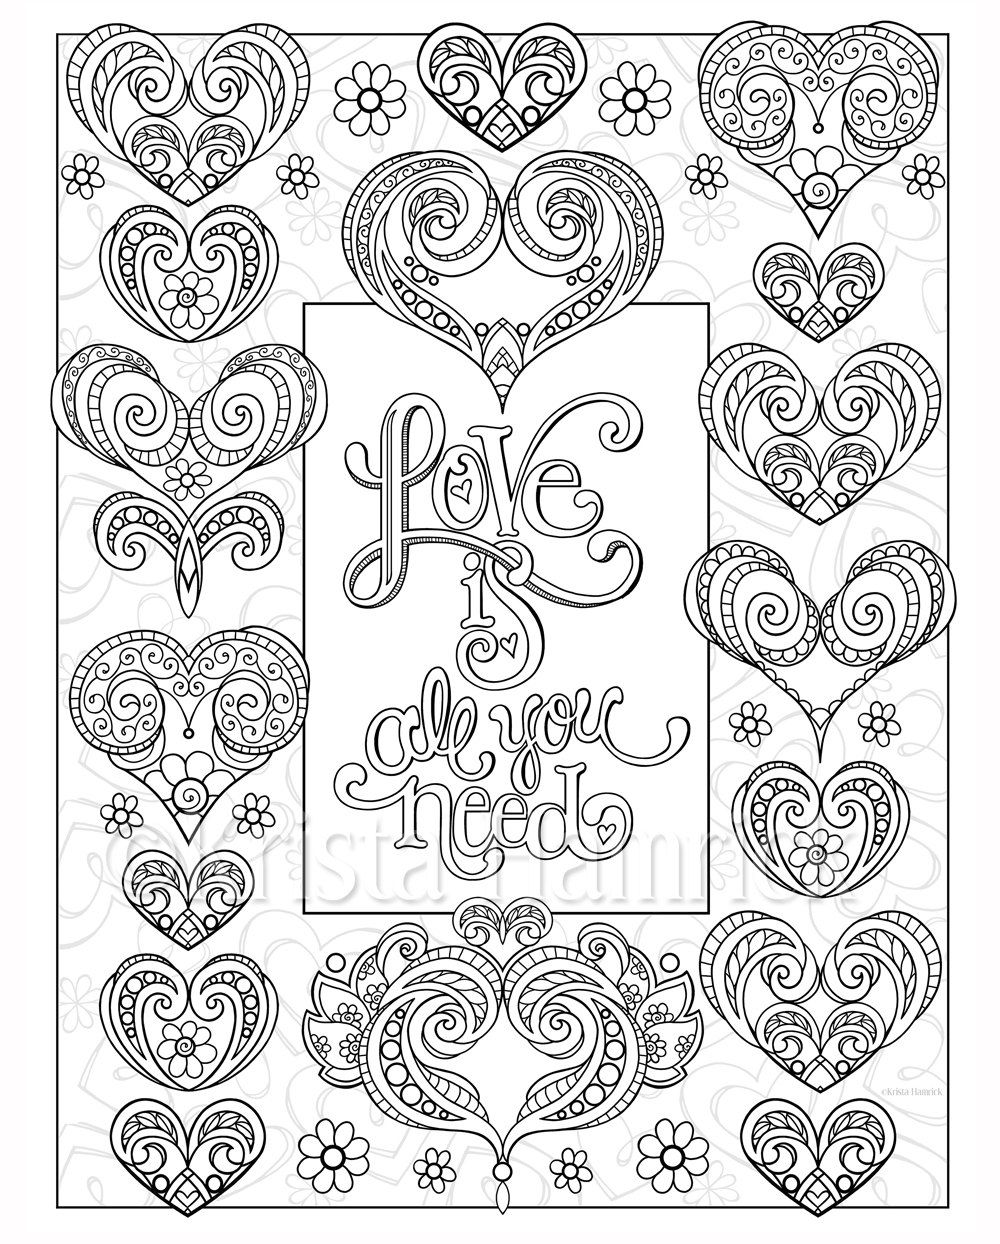 love hearts 2 coloring pages for valentines day - Coloring Pages Hearts 2